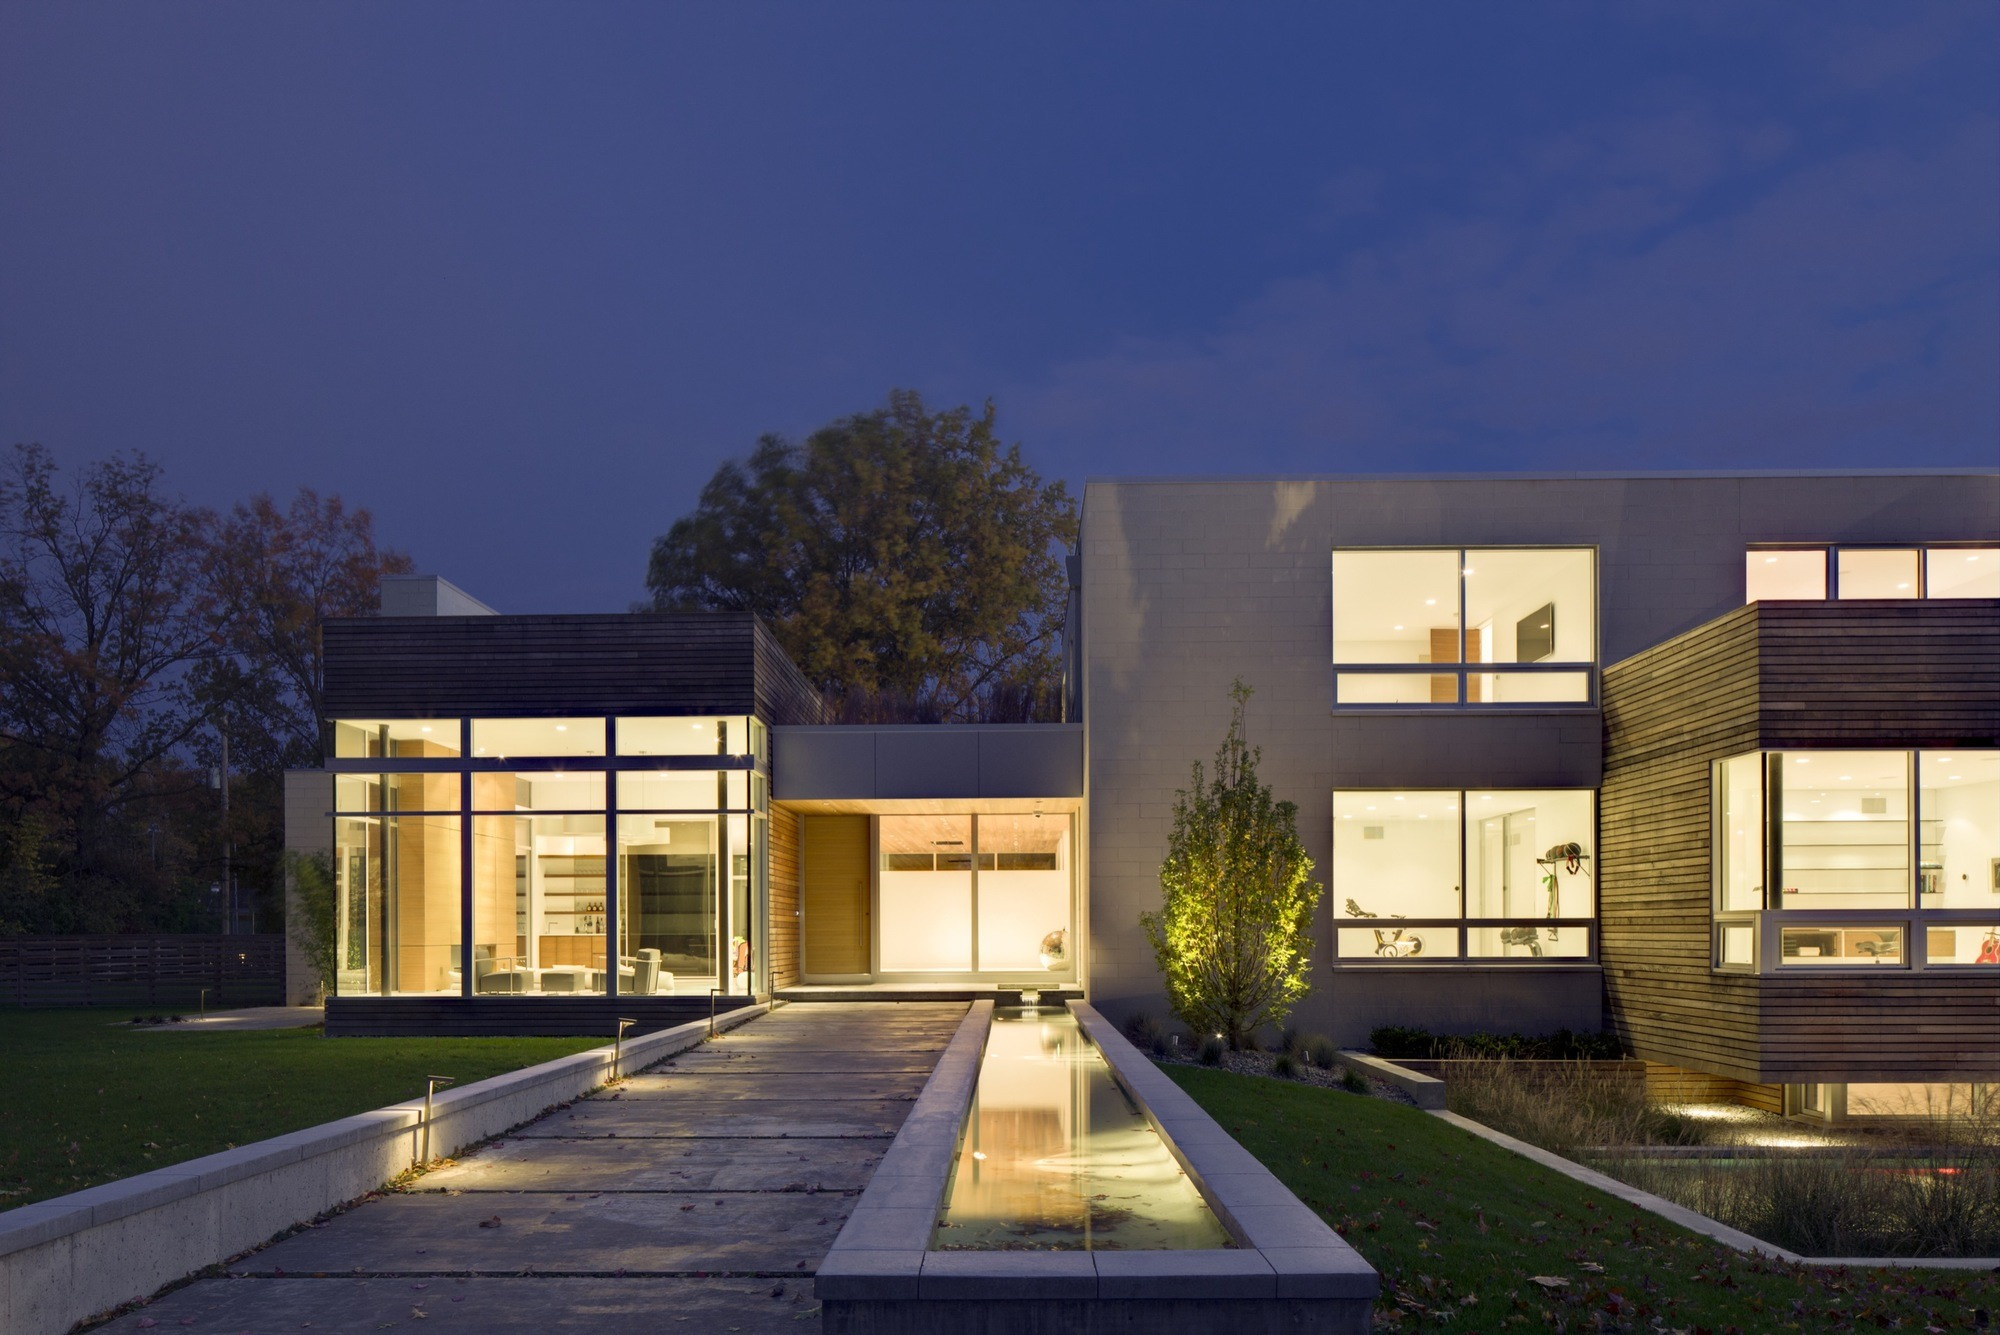 Shaker heights house by dimit architects karmatrendz for Exterior home lighting design